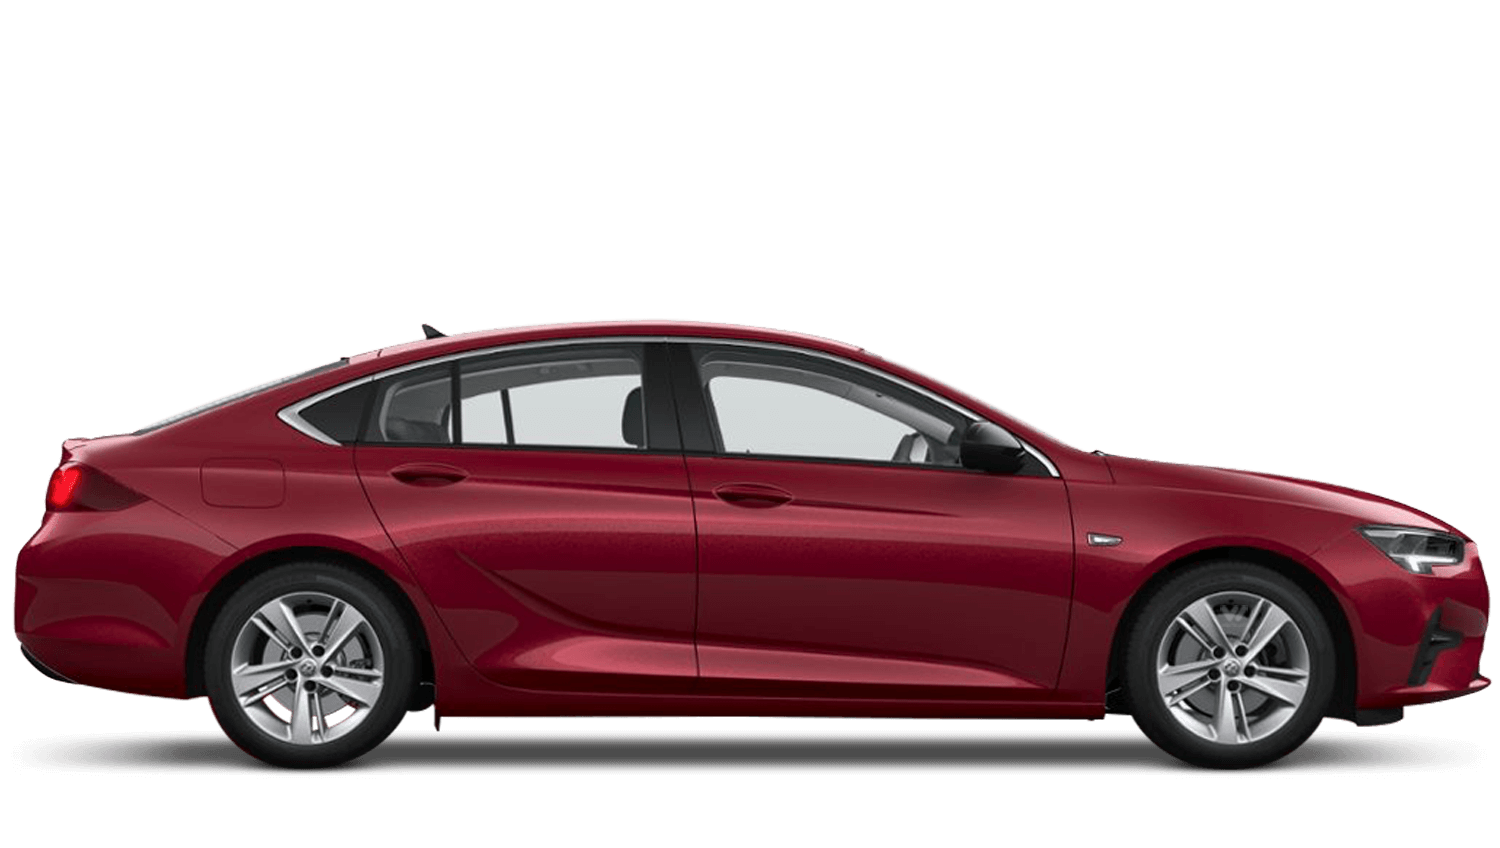 Hot Red (Premium) Vauxhall Insignia New